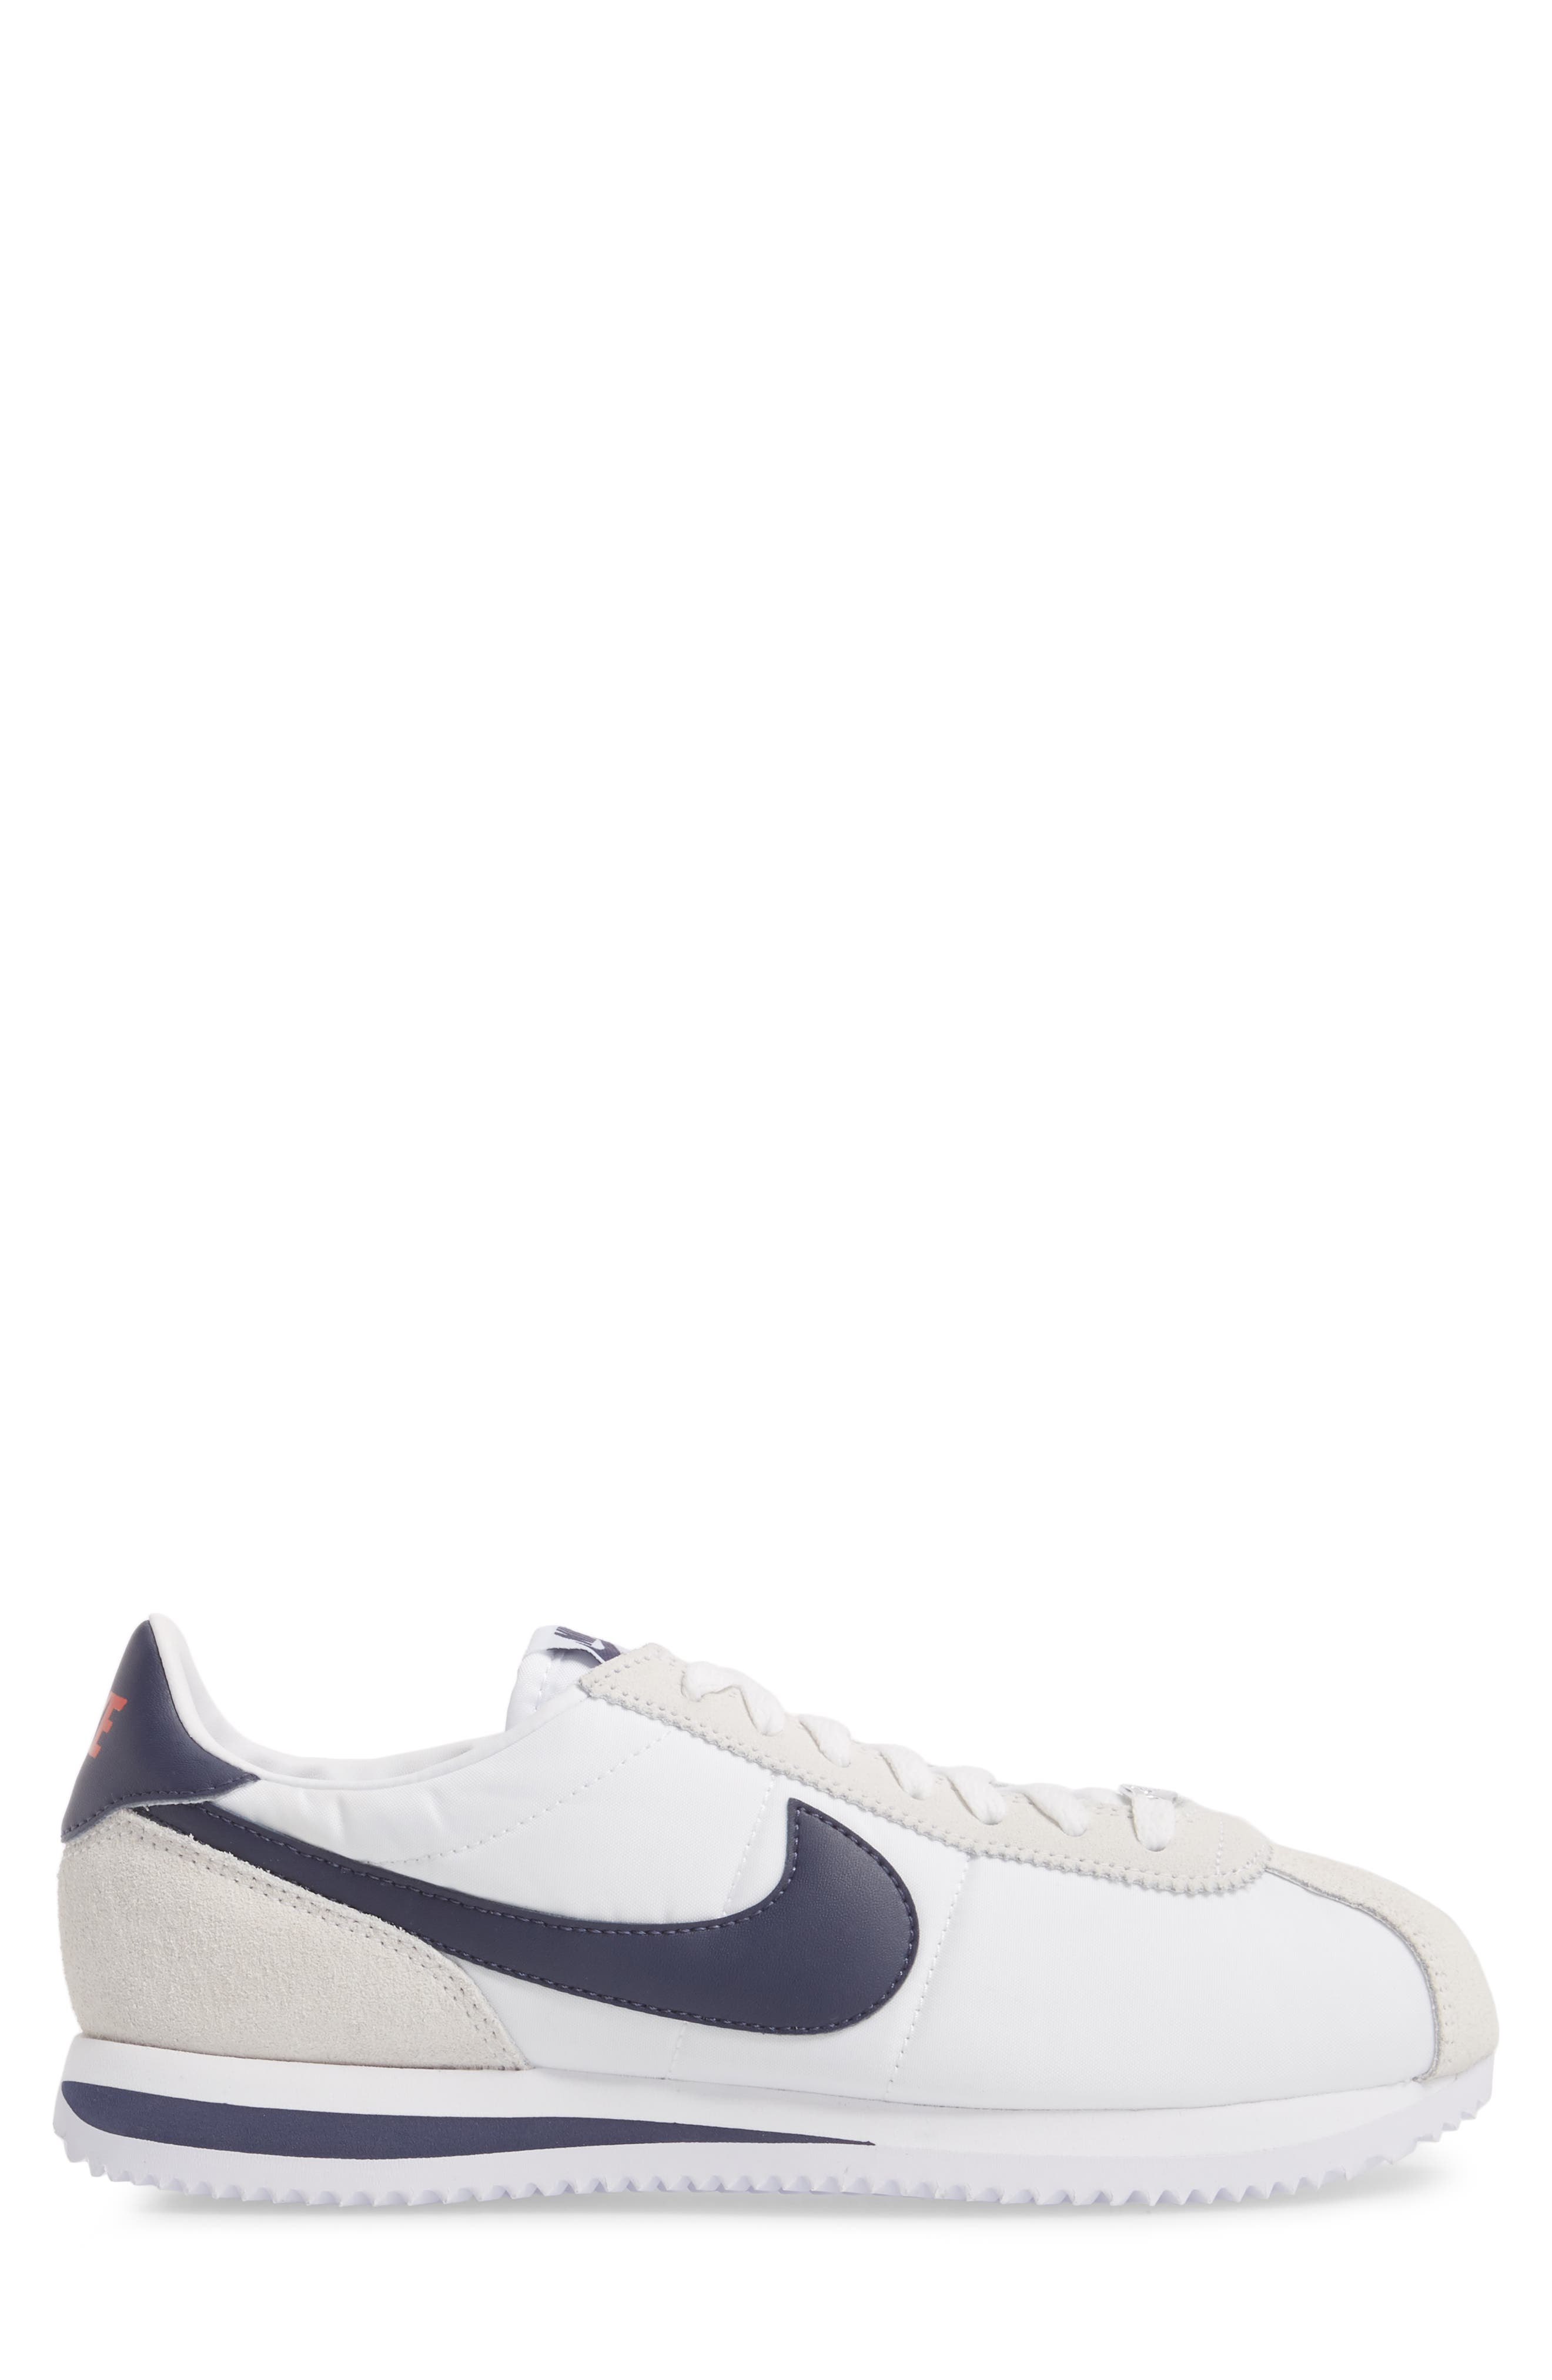 Cortez Basic Nylon Sneaker,                             Alternate thumbnail 3, color,                             102